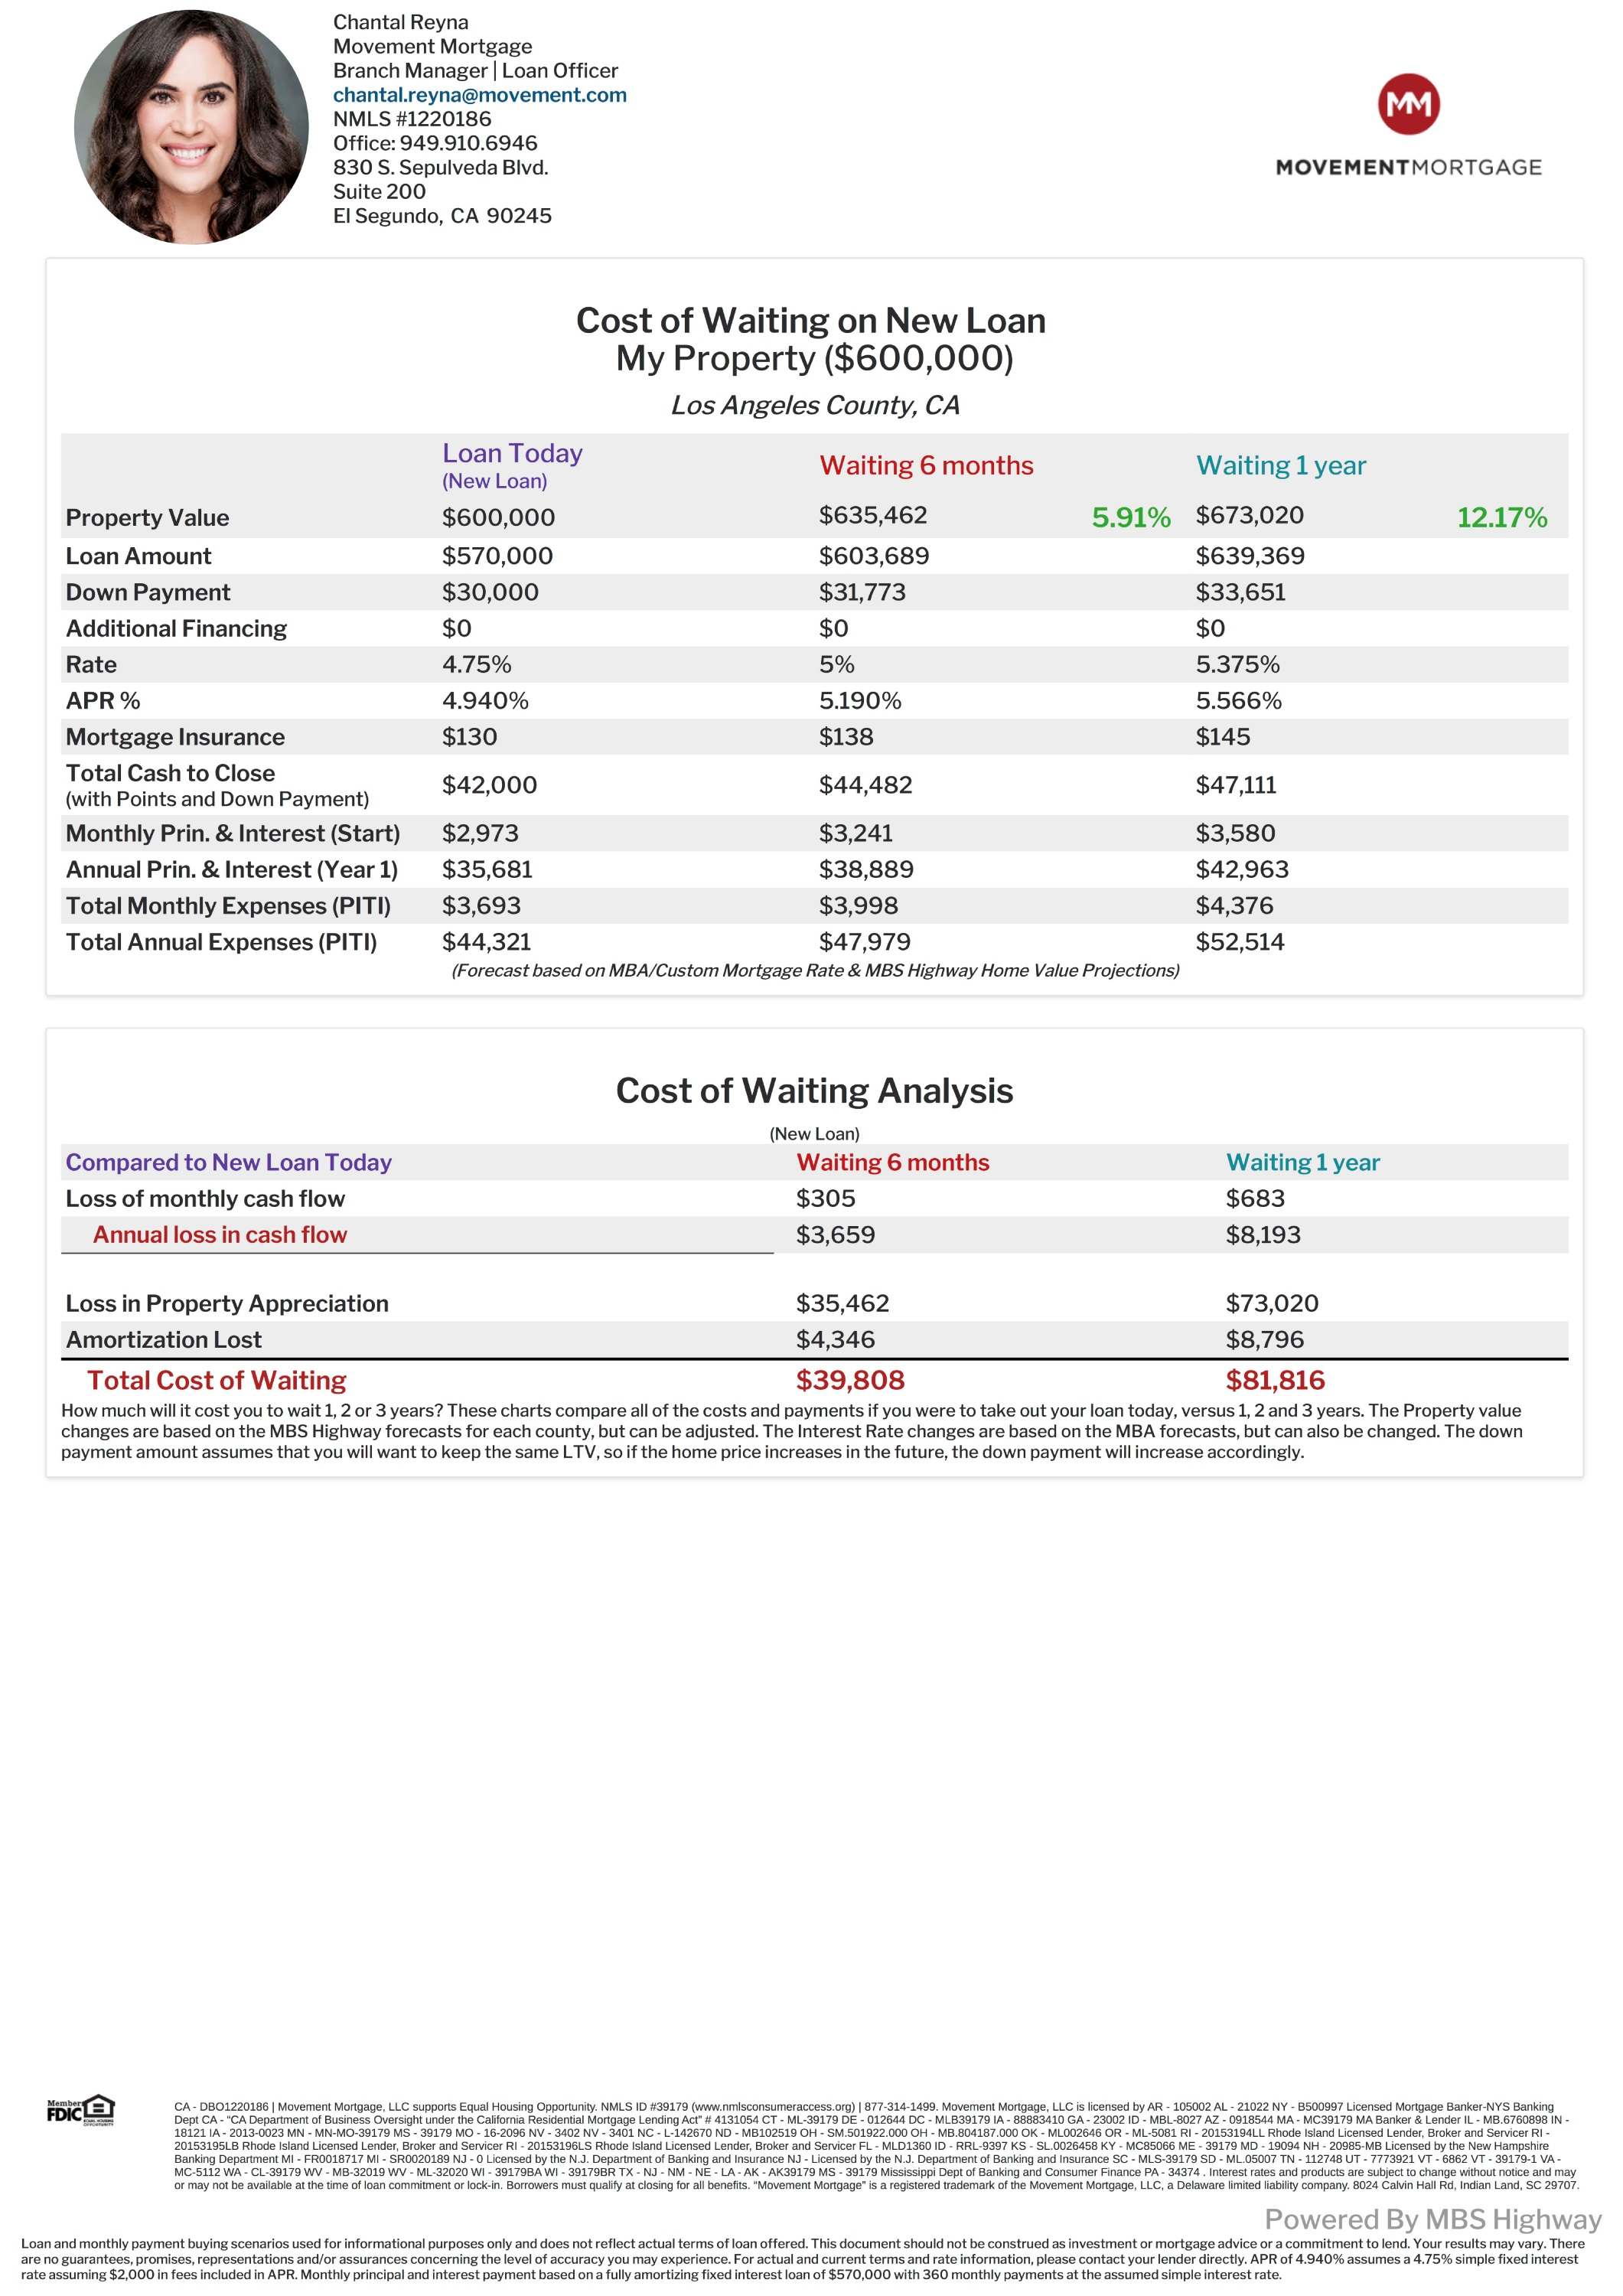 Cost Of Waiting Analysis - My Property